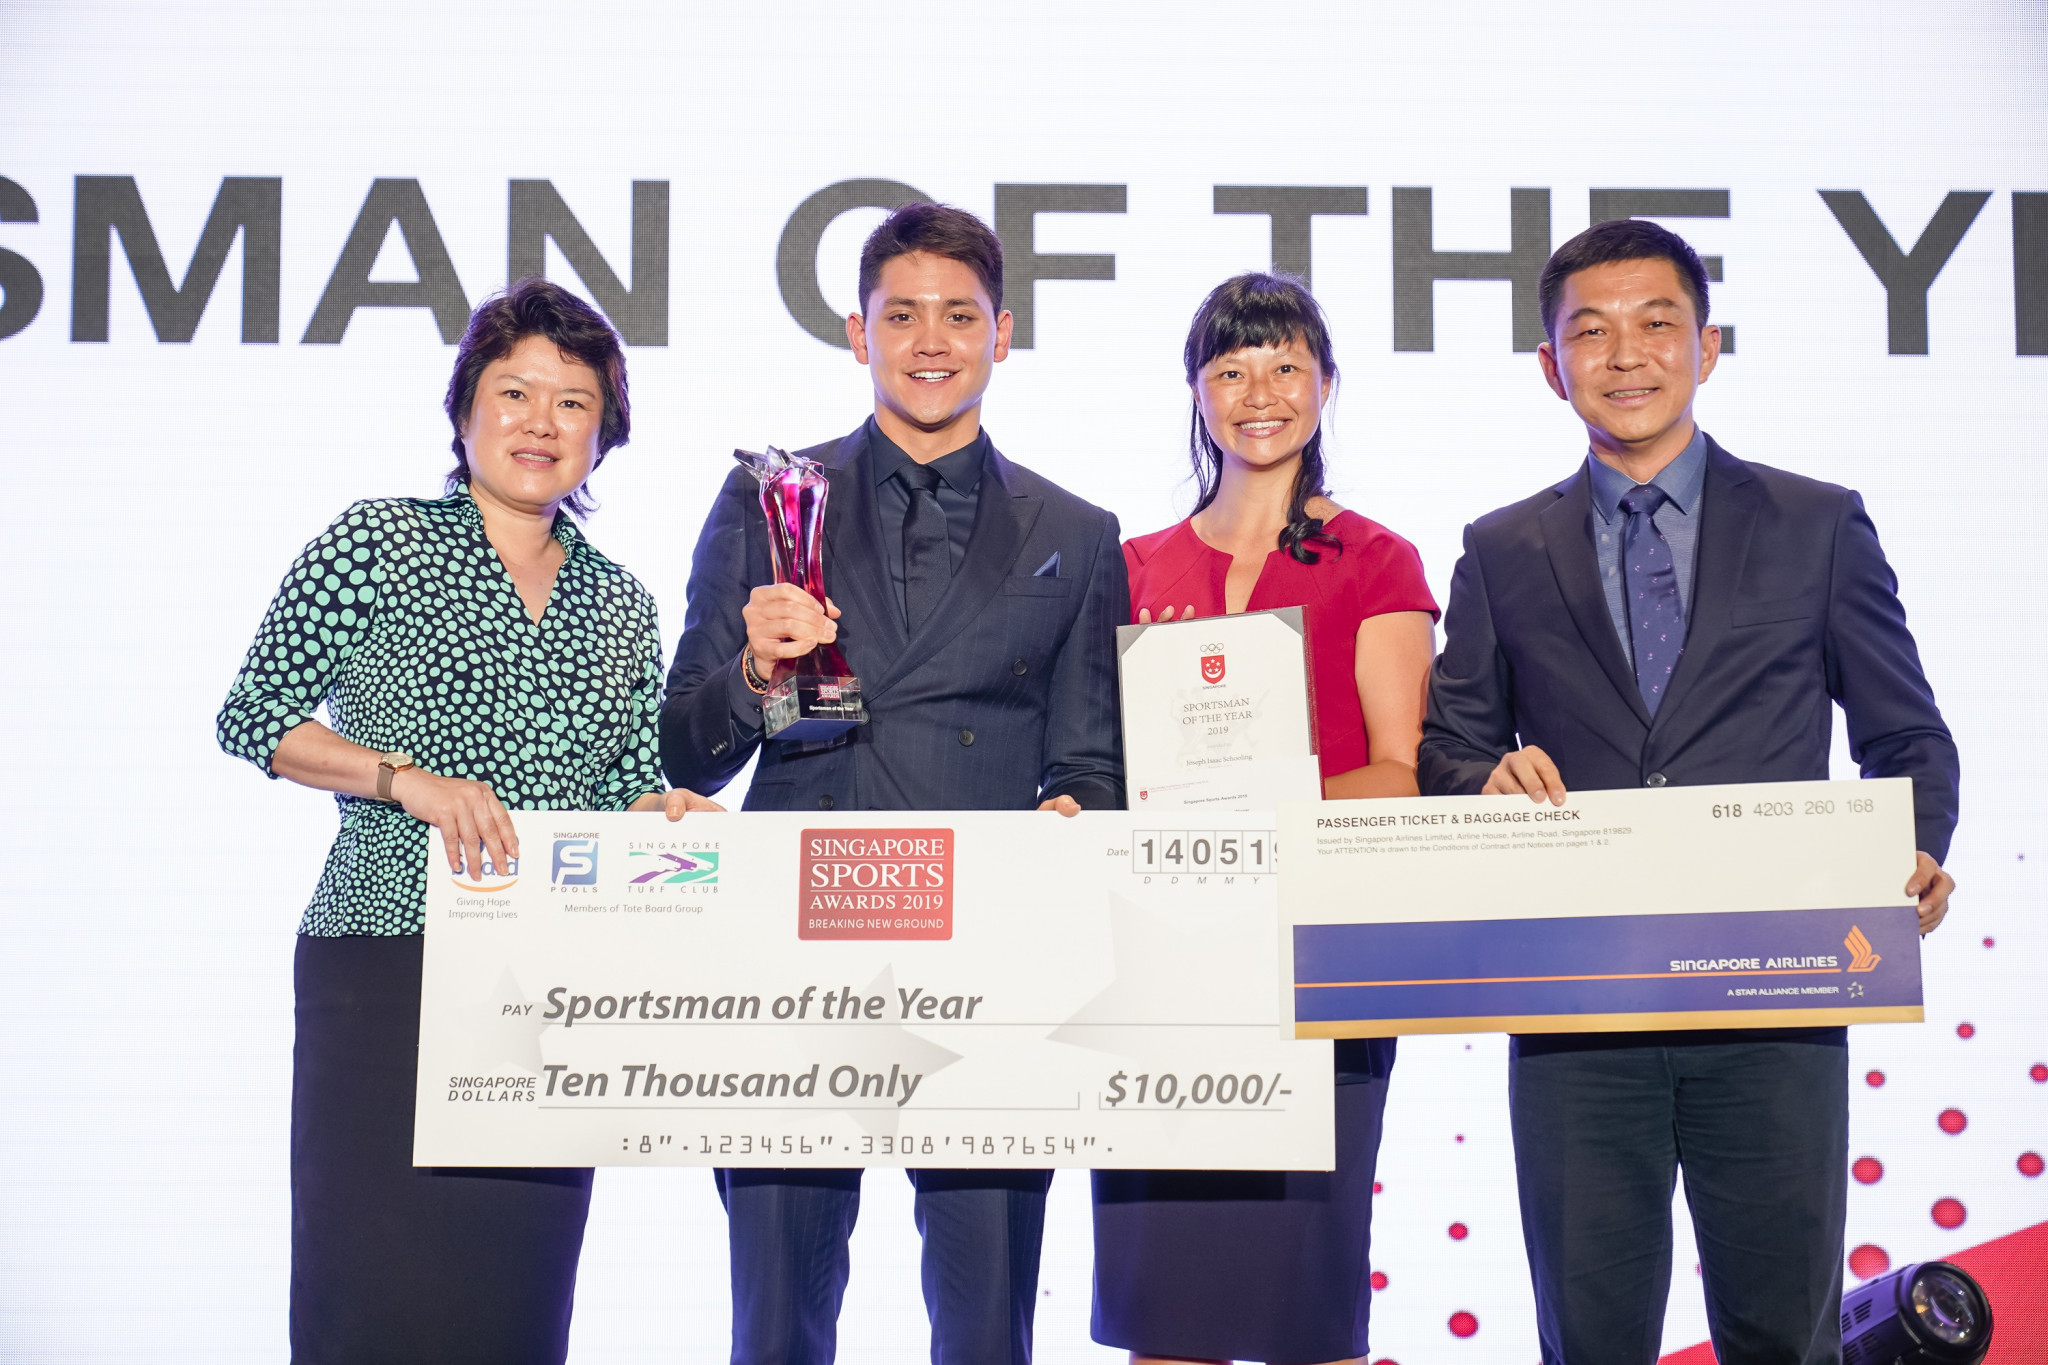 Swimmer Schooling and shooter Veloso named Singapore's sportsman and sportswoman of the year